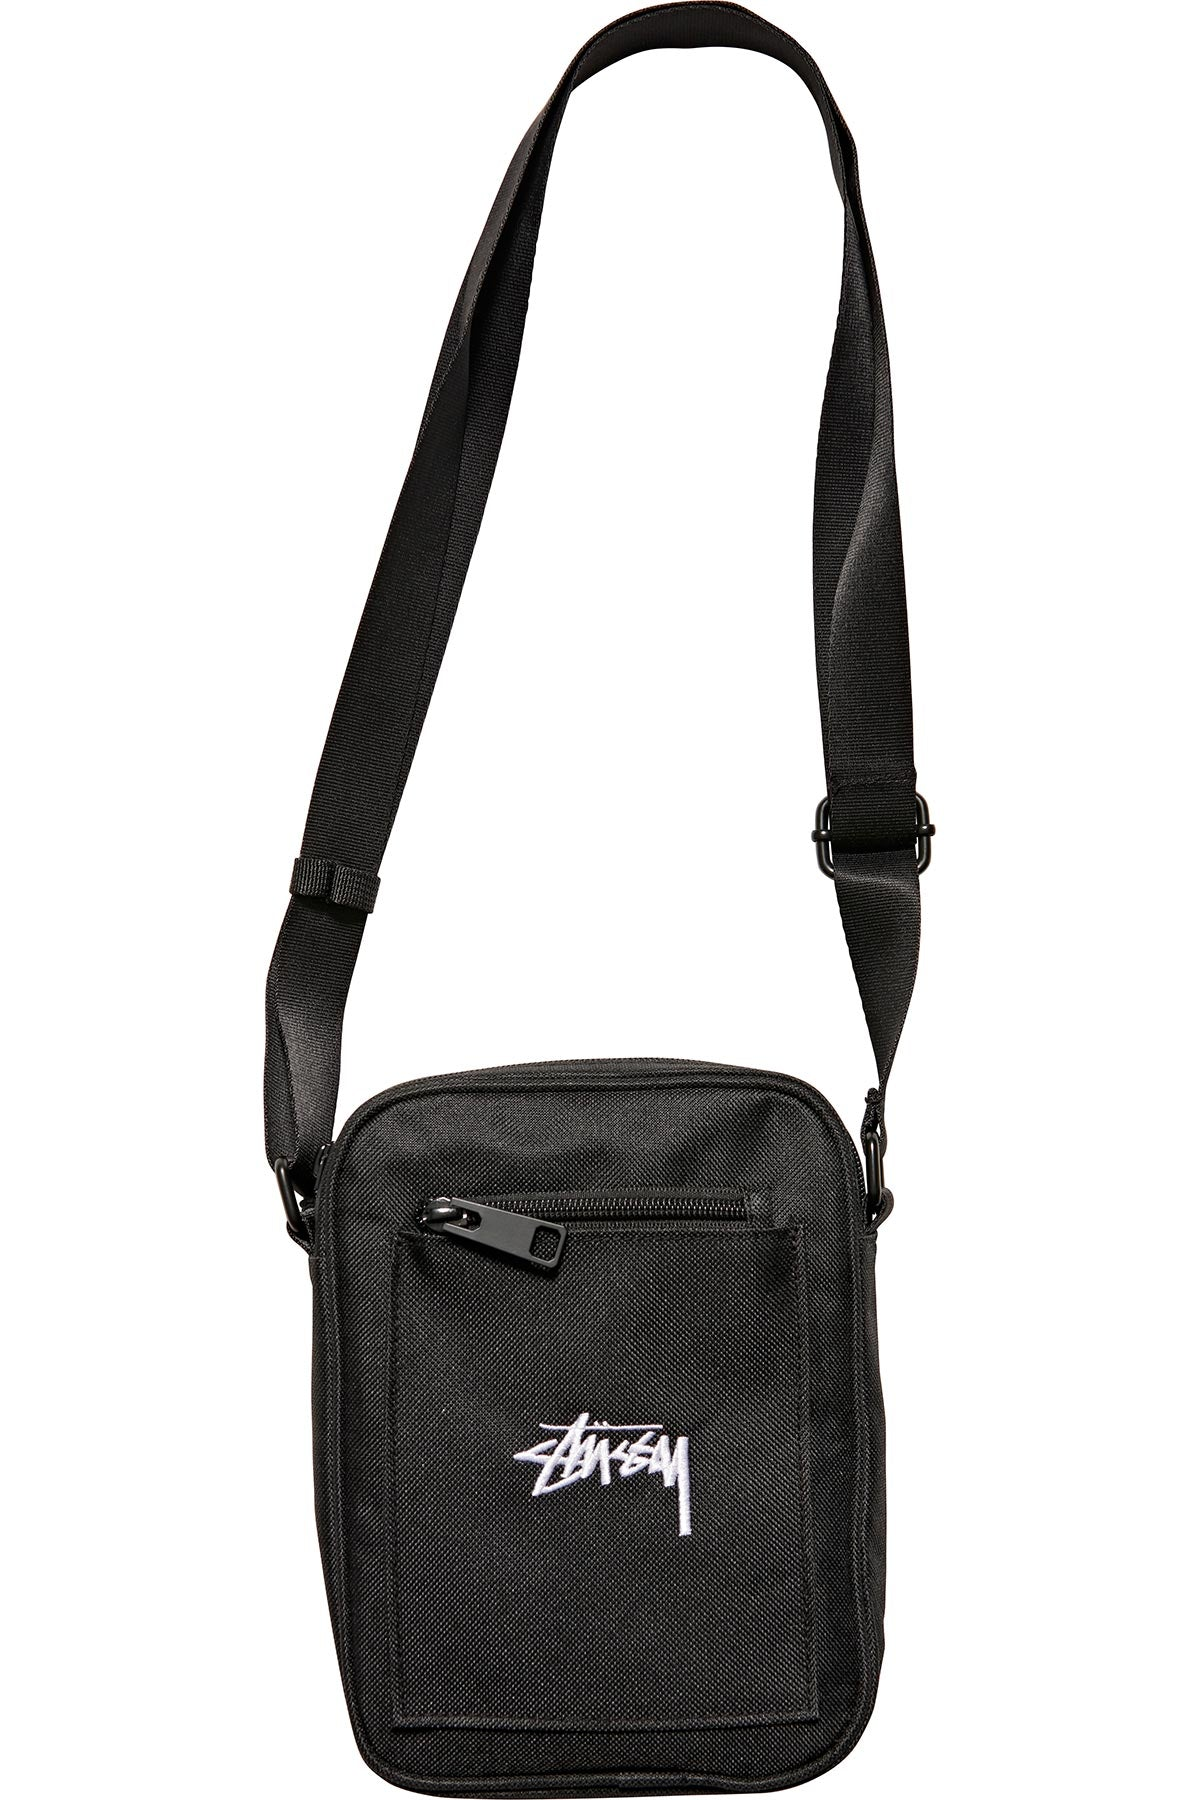 Stock Messenger Bag - R8gzwear